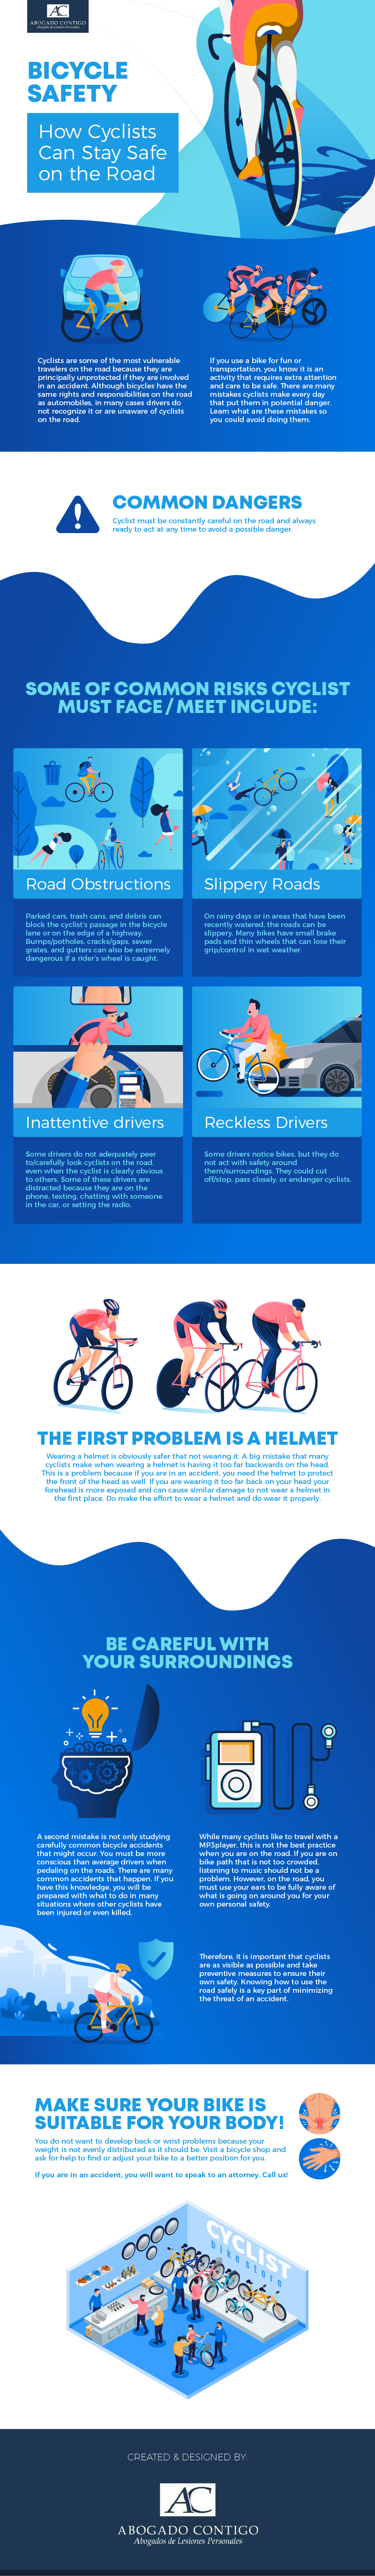 Bicycle_Safety_How_Cyclists_Can_Stay_Safe_on_the_Road